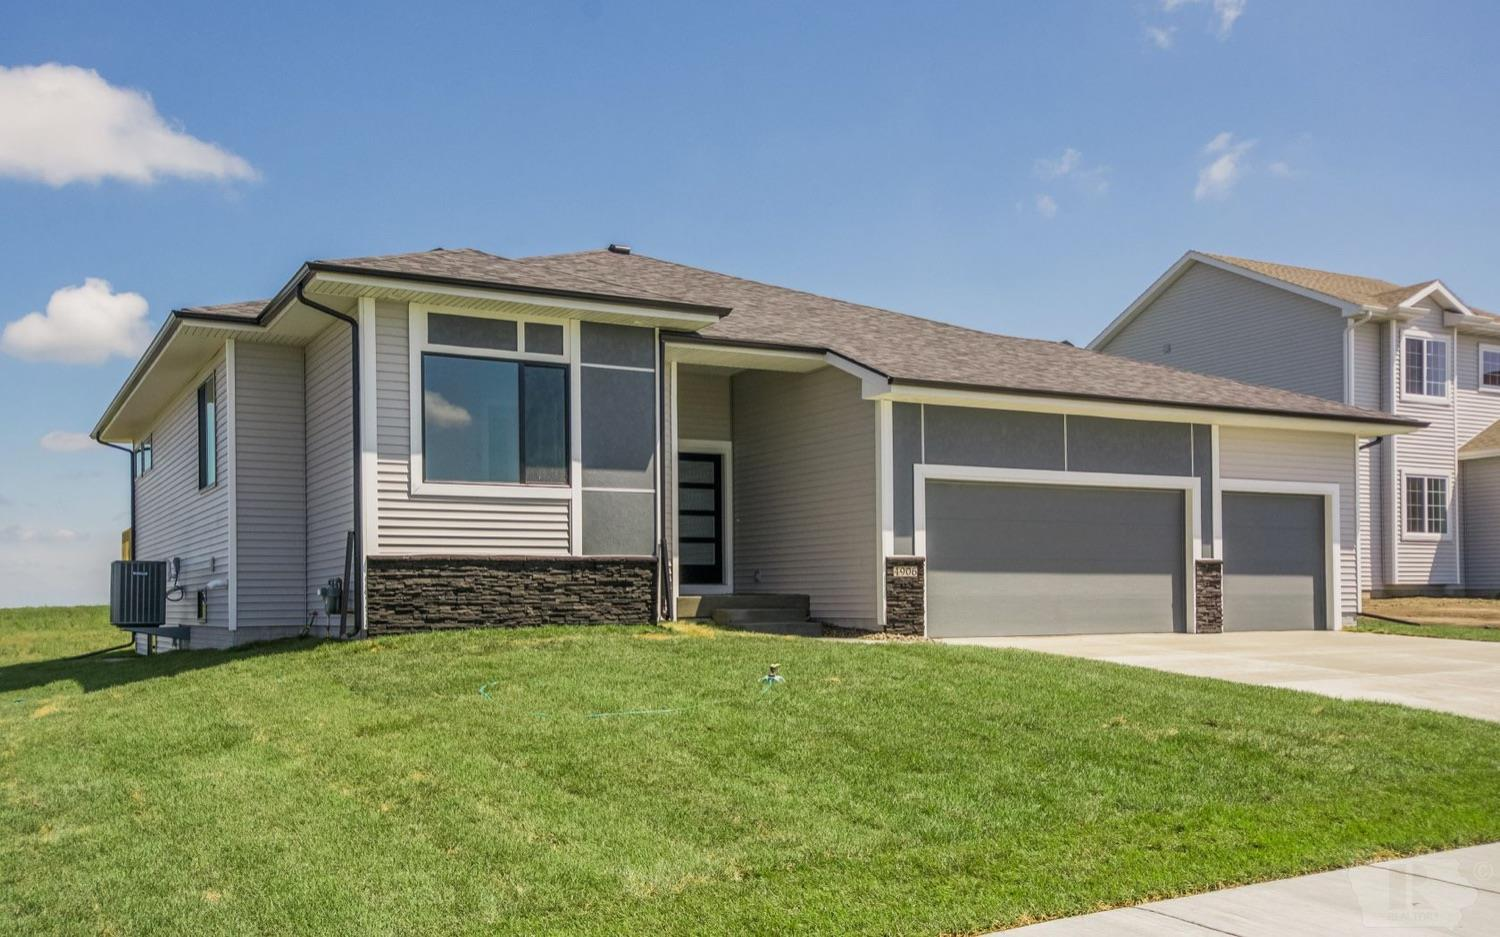 2511 7th, Newton, Iowa 50208, 3 Bedrooms Bedrooms, ,2 BathroomsBathrooms,Residential,For Sale,7th,35017224